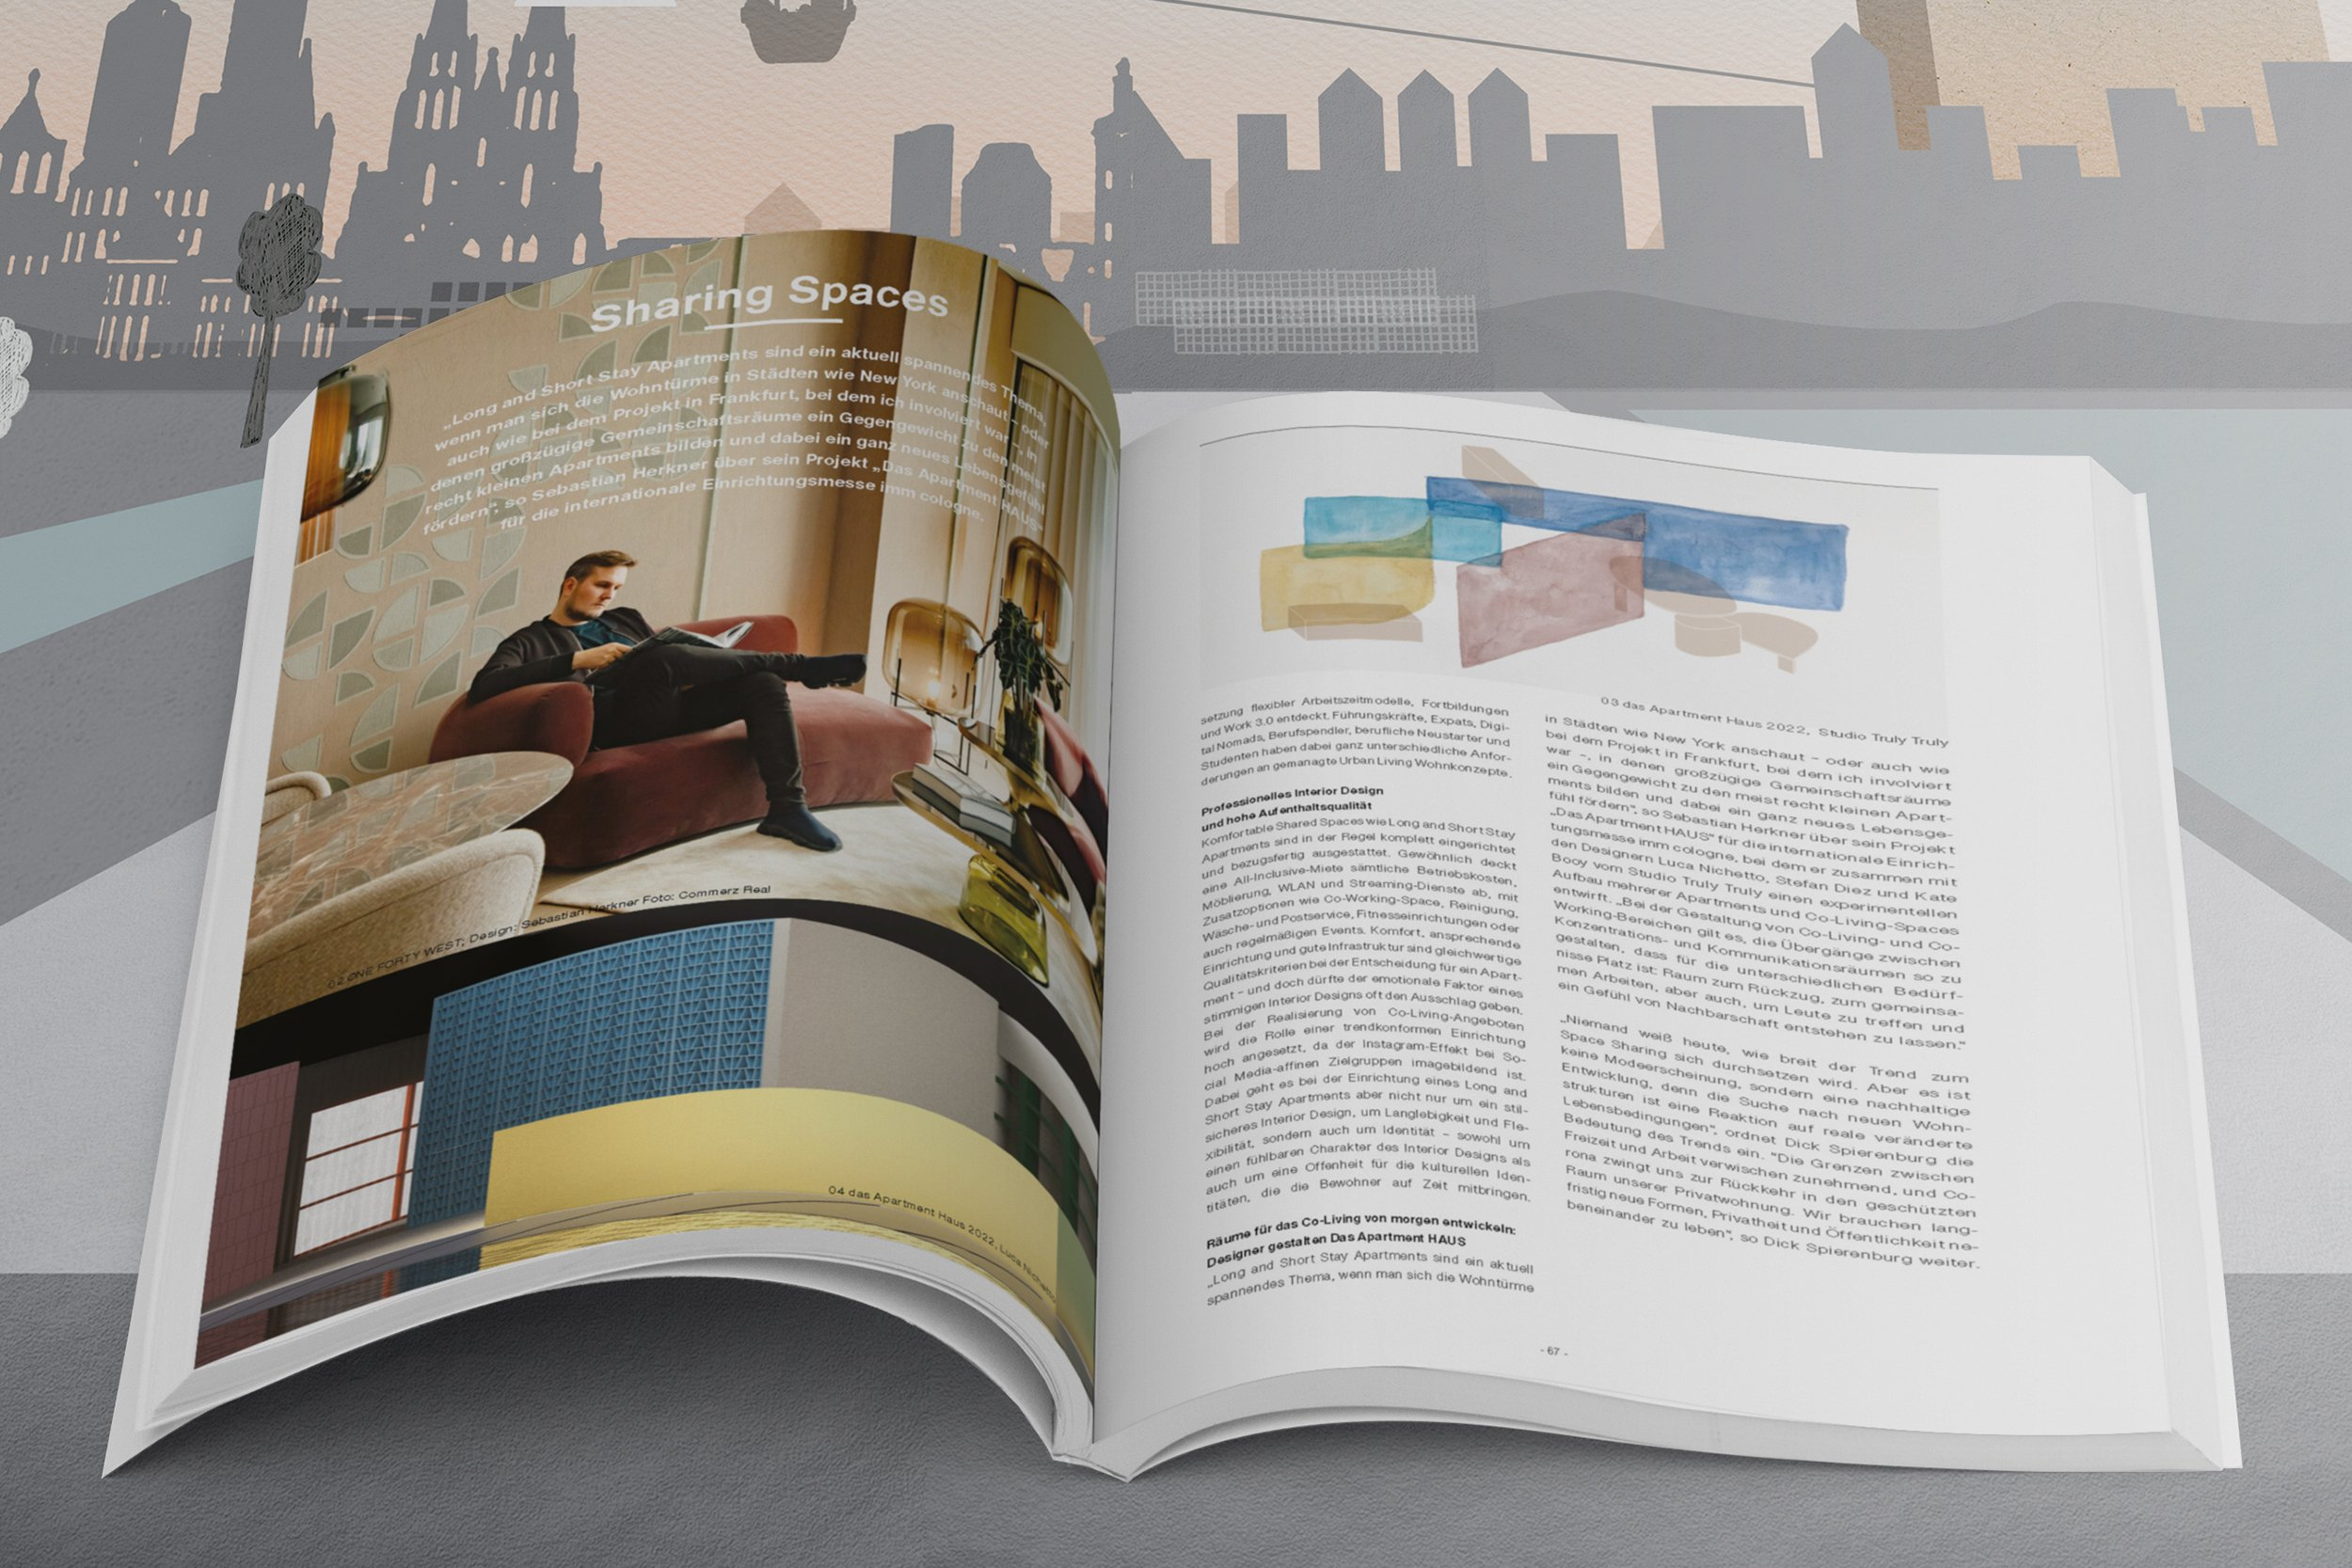 https://farconsulting.de/wp-content/uploads/2021/02/03_Shaping-Spaces_Trend-Briefing.jpg